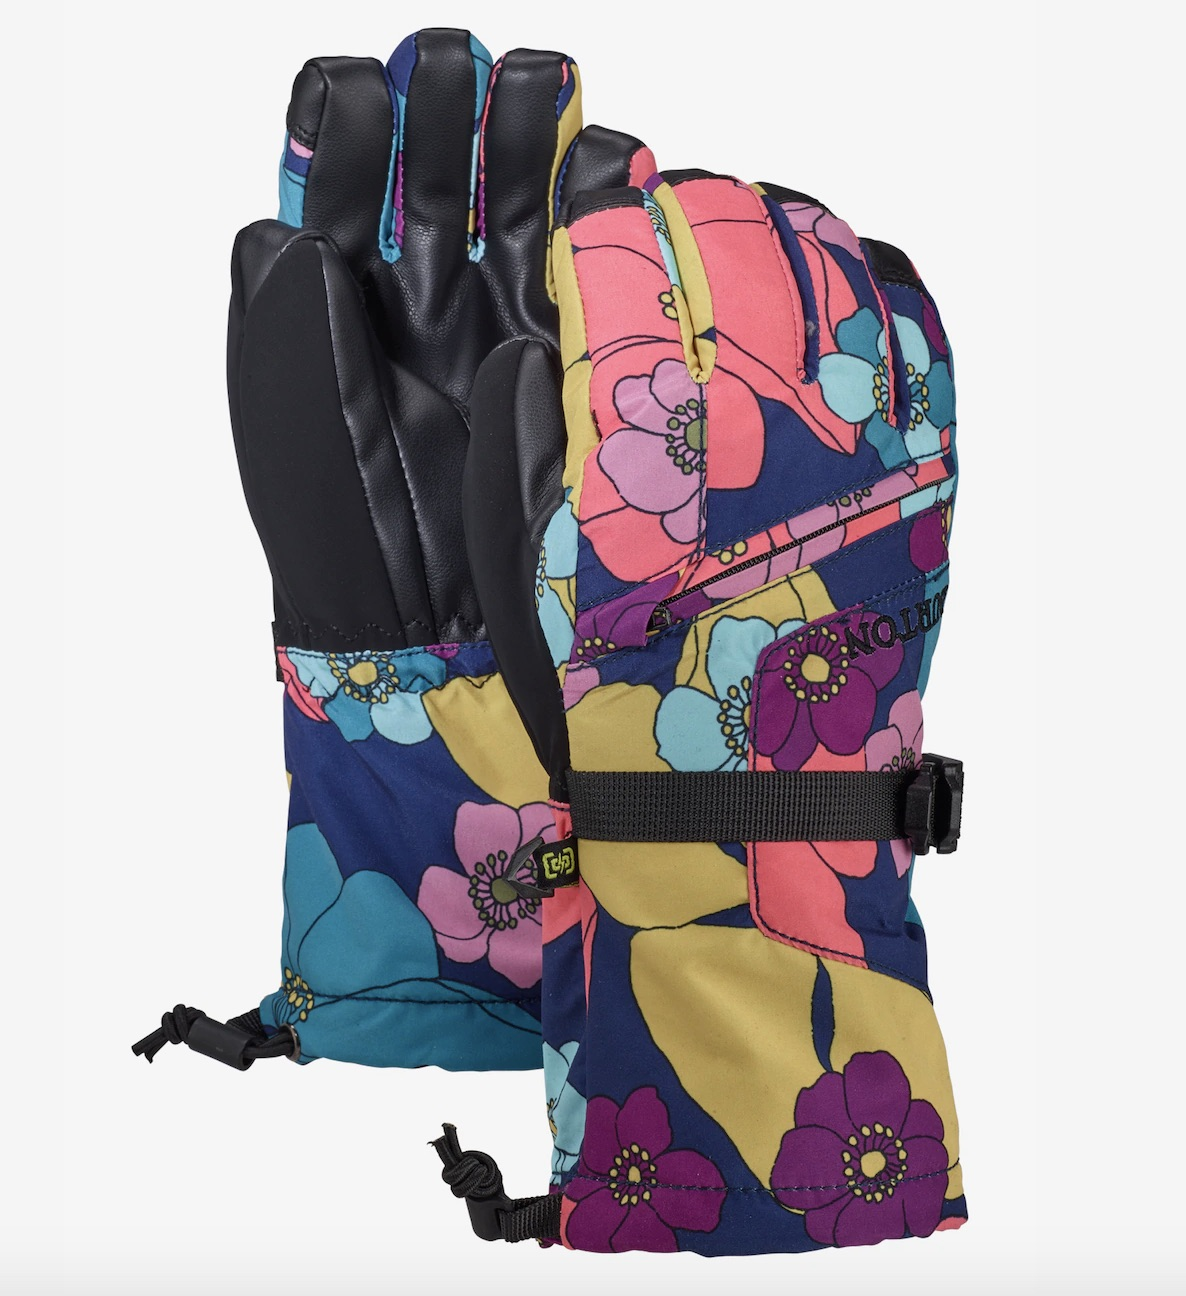 Cool gifts for tween girls: Kids Burton Vent Glove